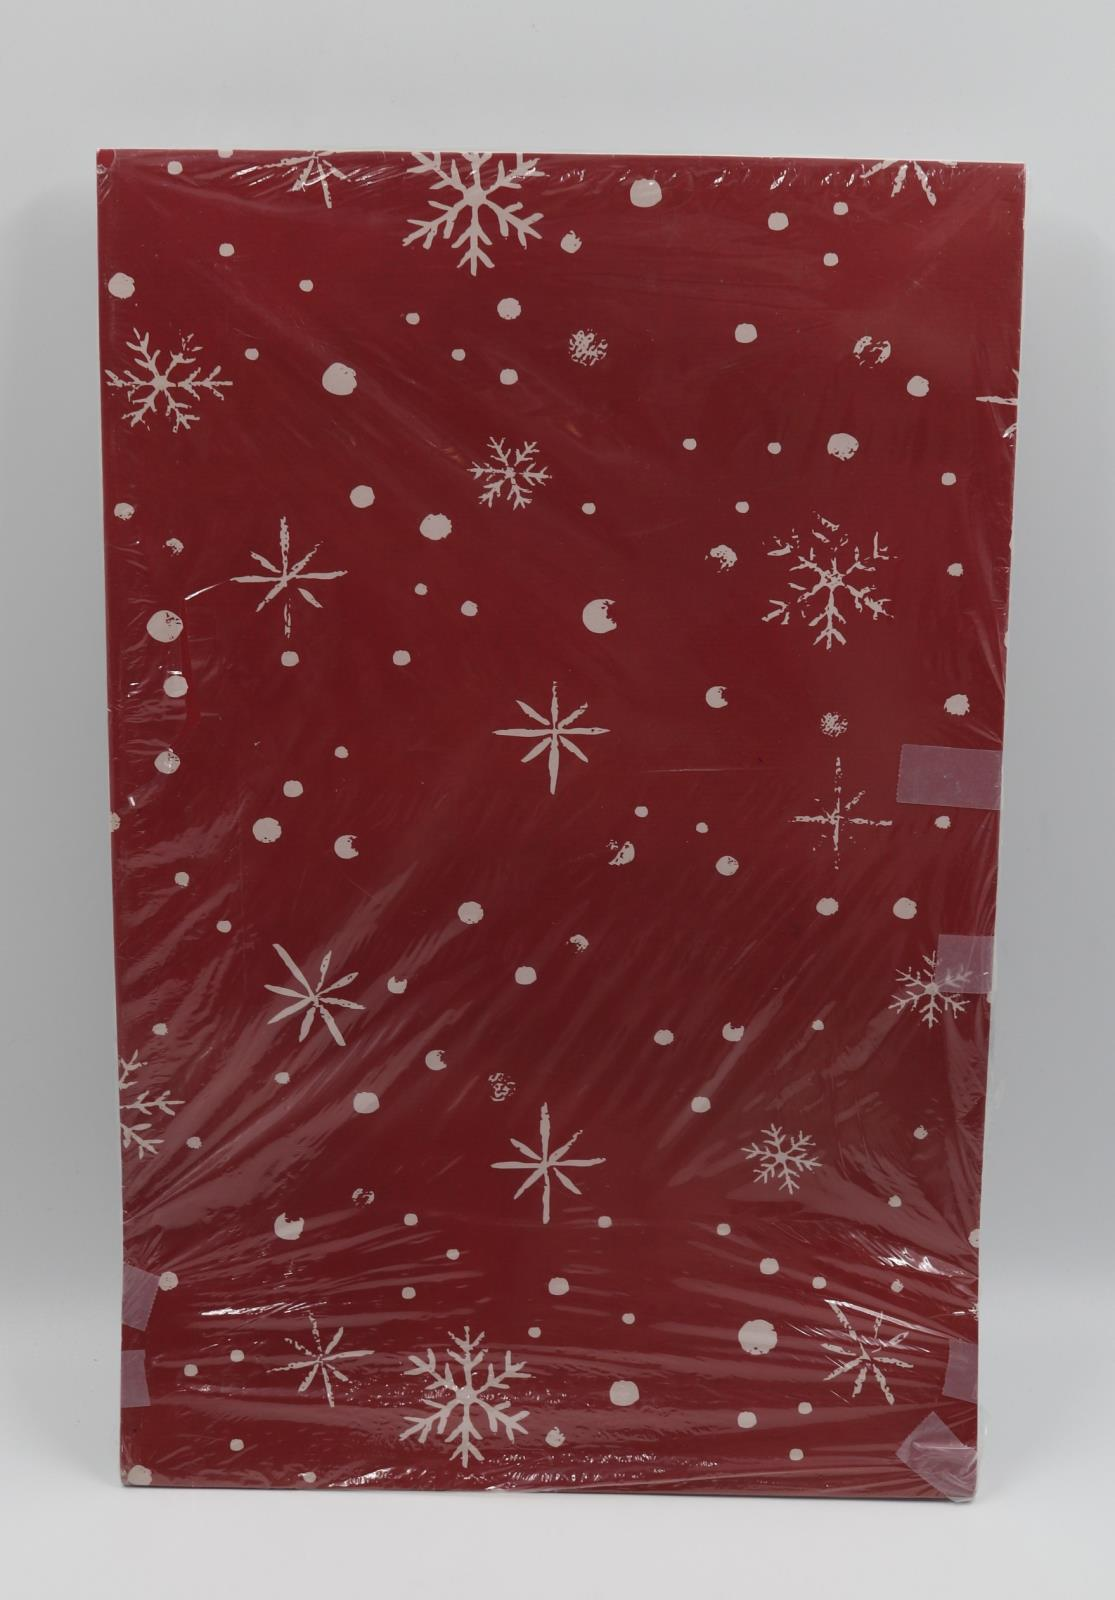 Christmas-Printed Robe Gift Boxes #3605 Assorted 4-ct